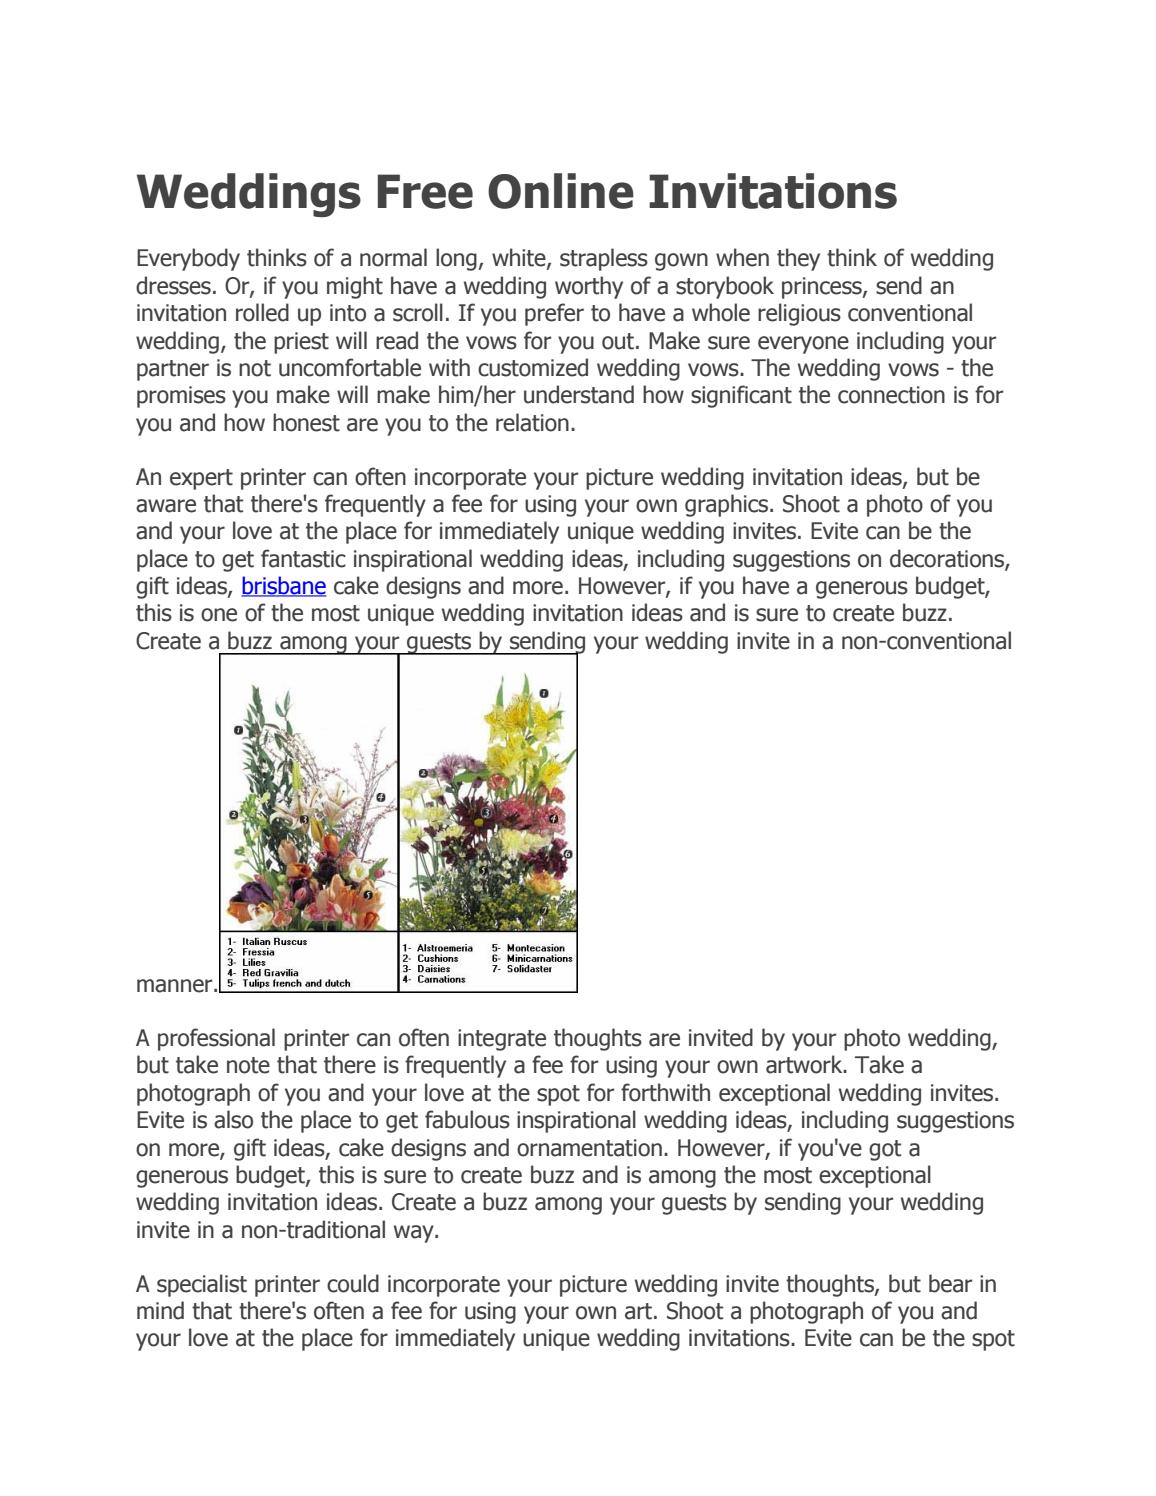 Weddings free online invitations by petsandanimals - issuu